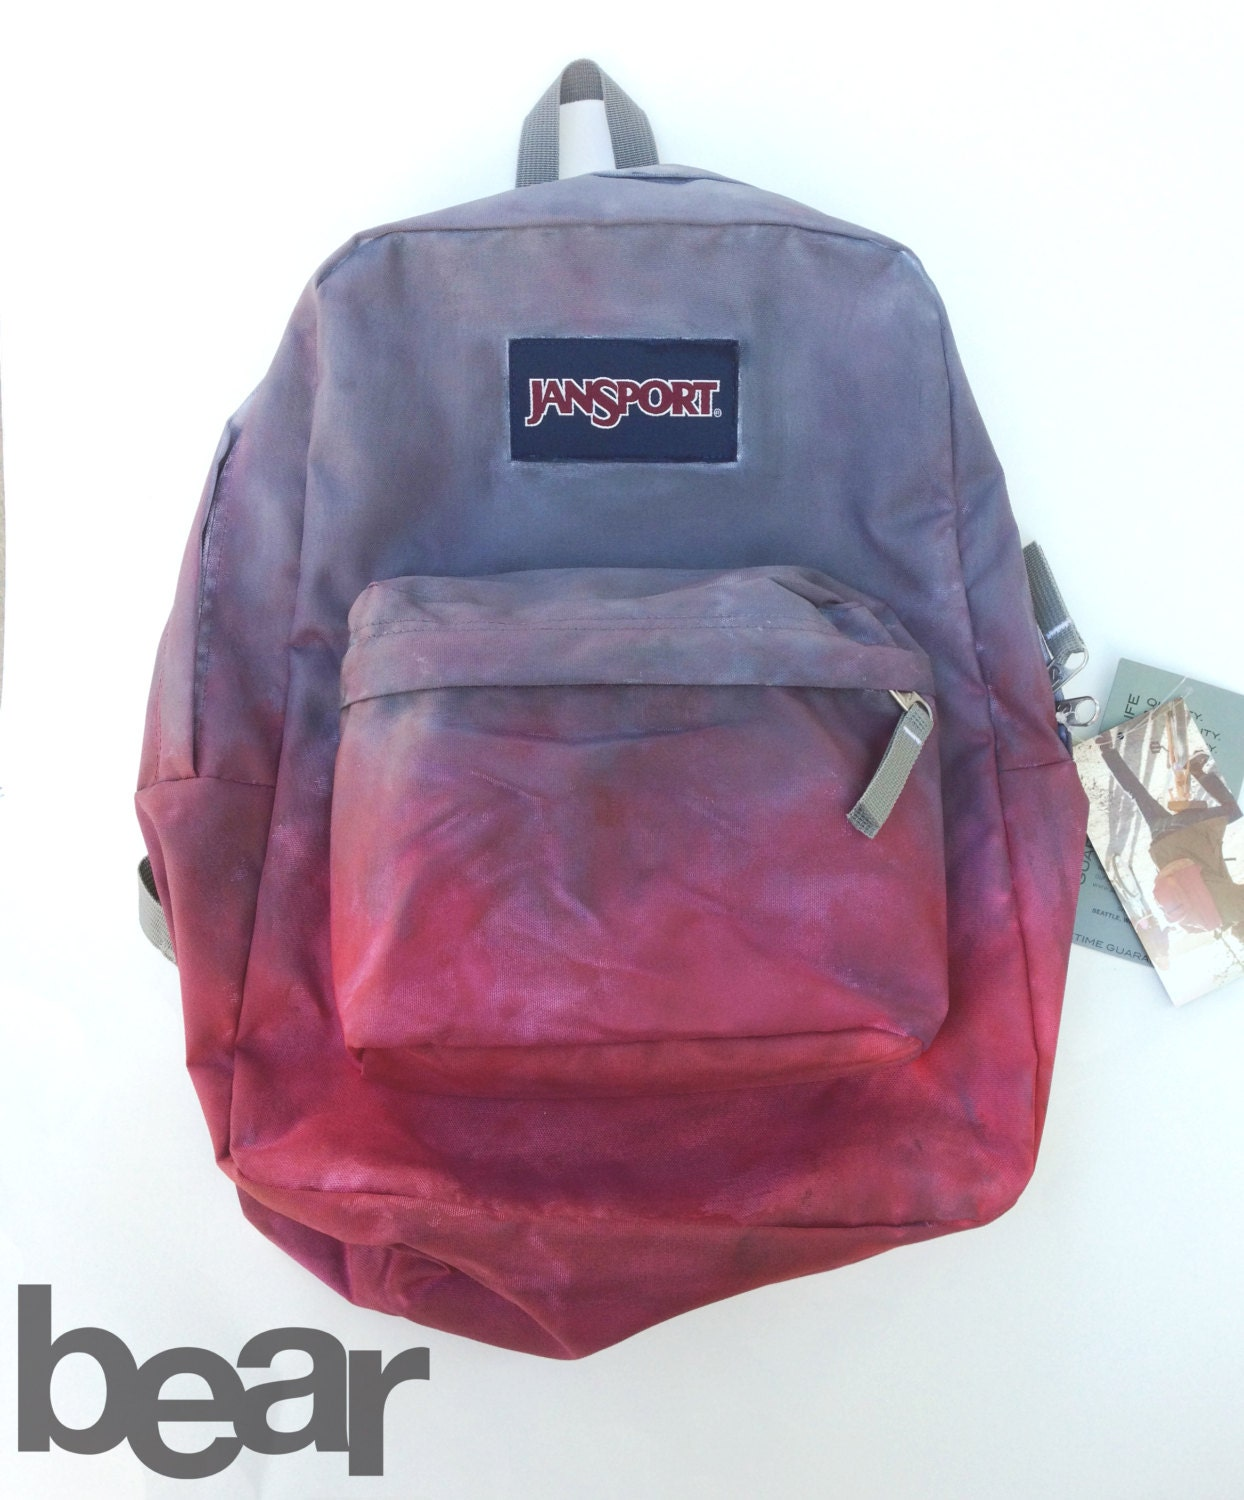 customize jansport backpacks Backpack Tools